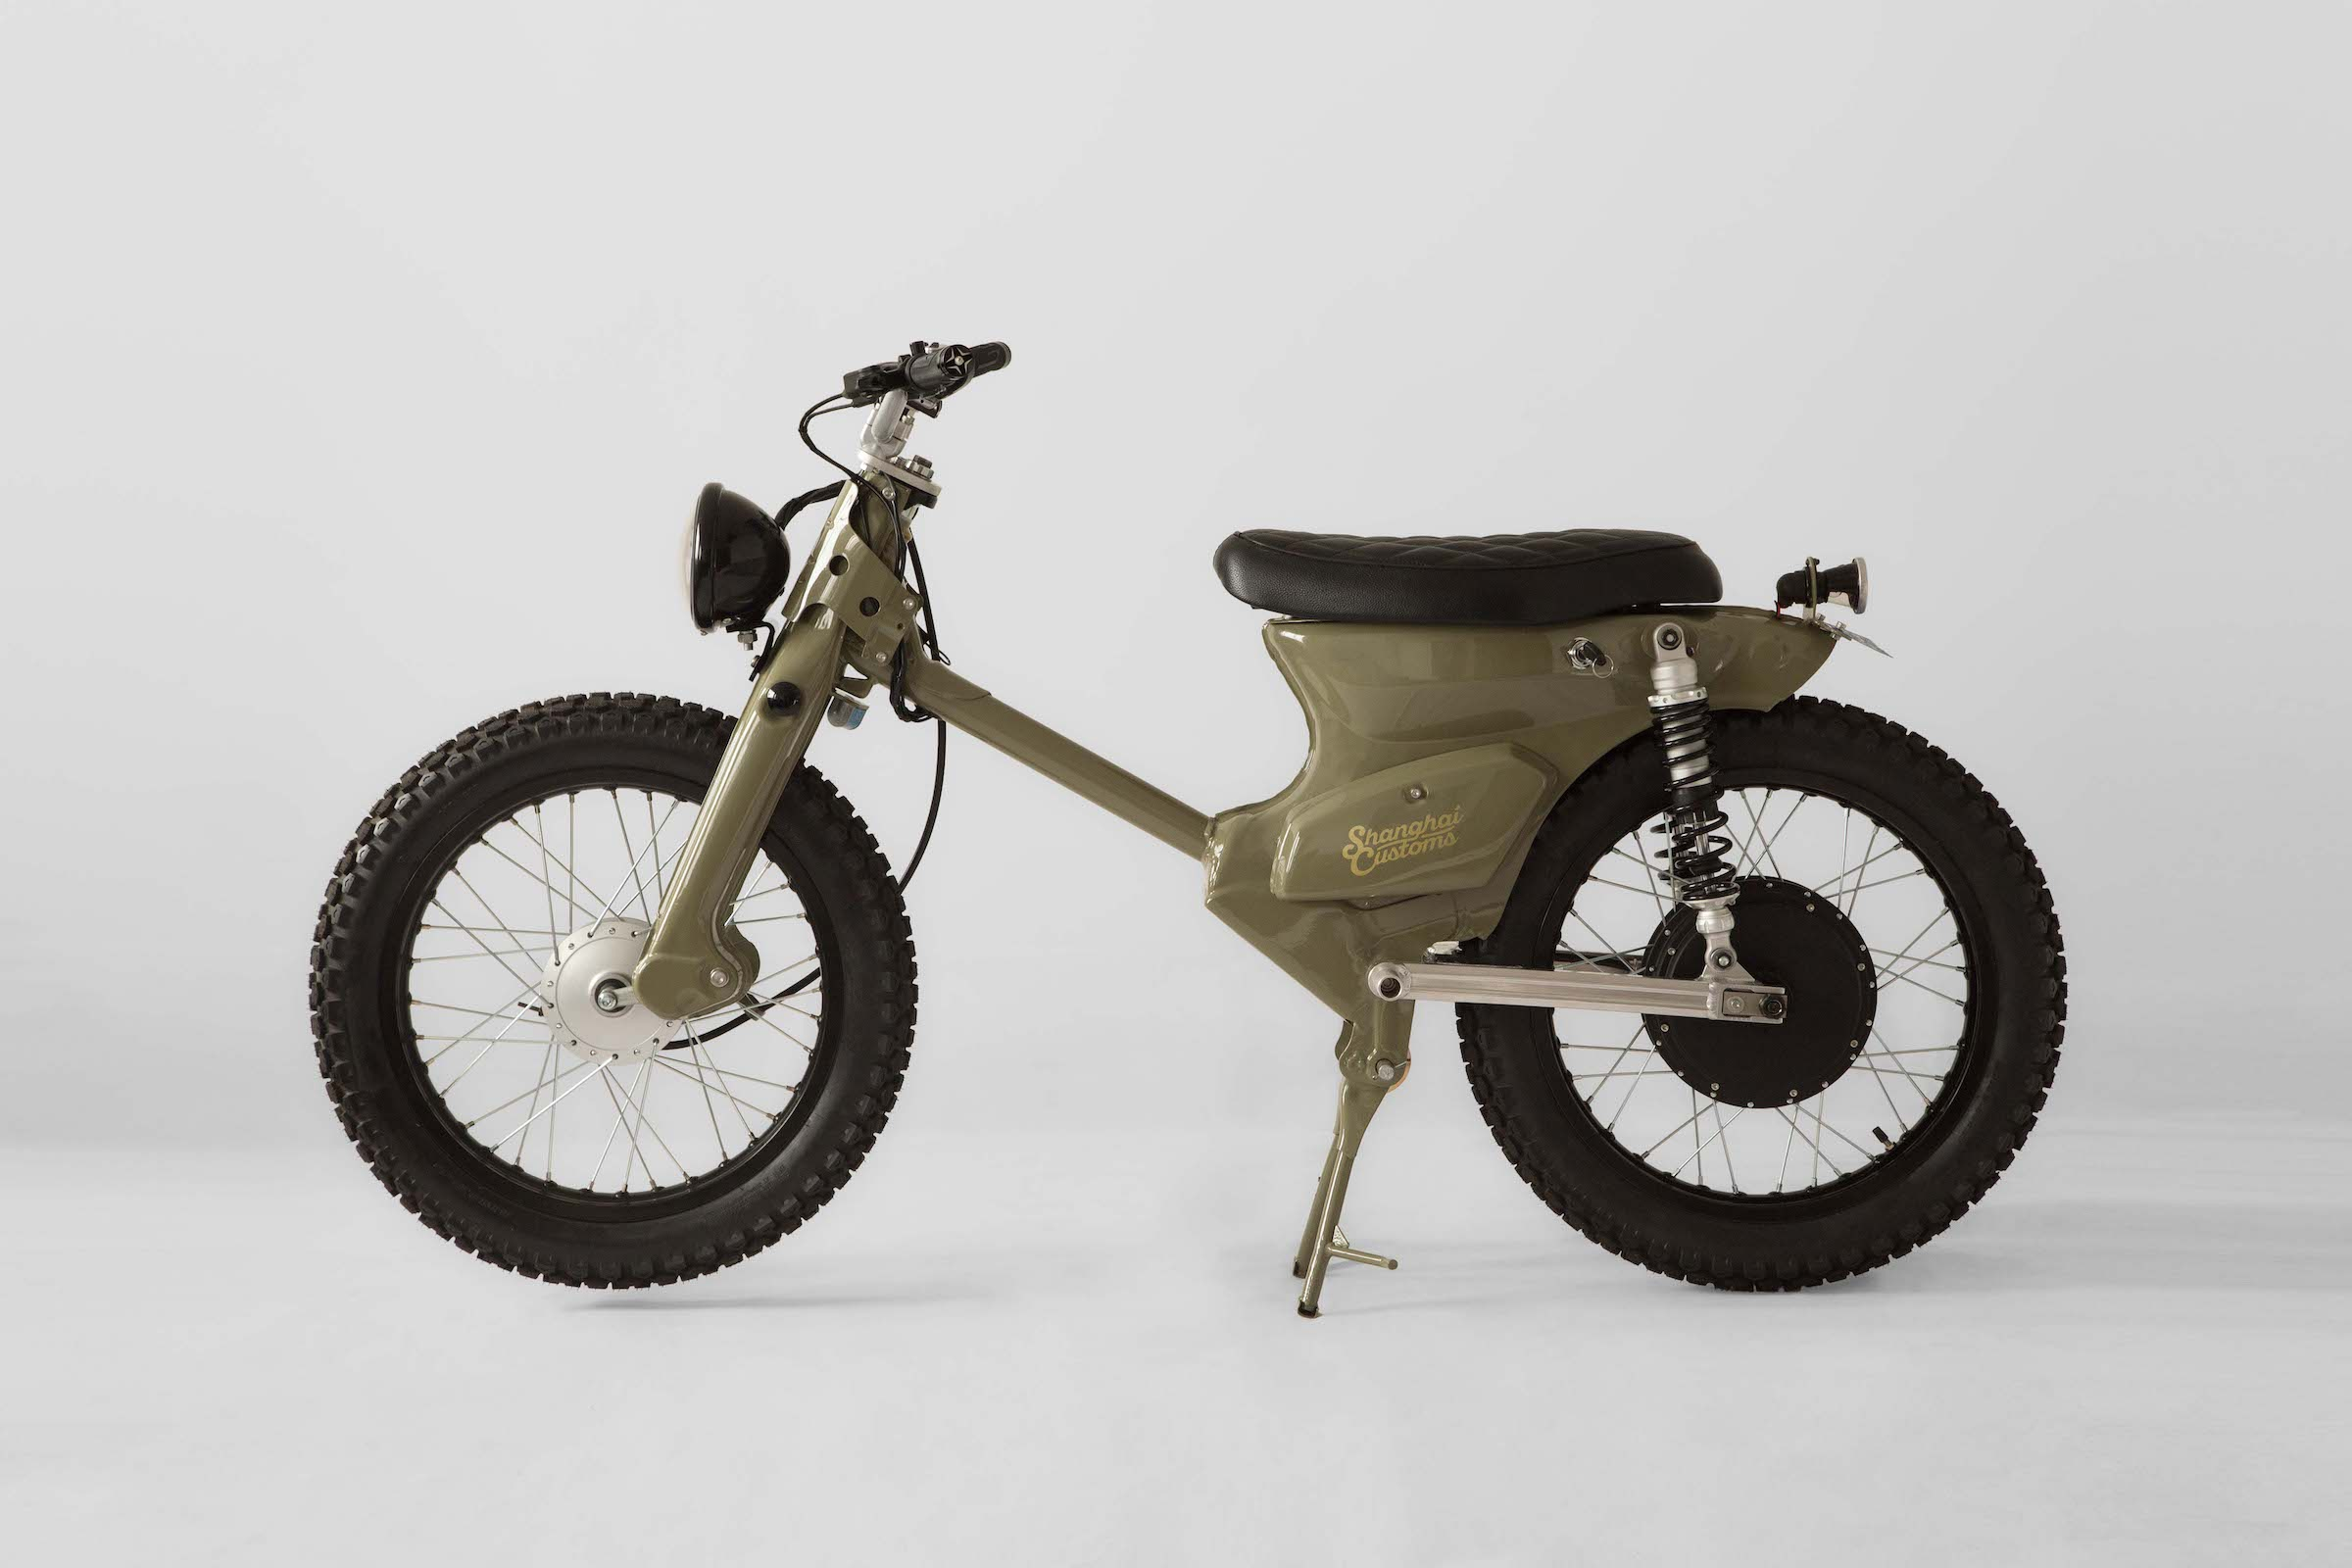 The Ecub 2 A Retro Electric Motorcycle By Shanghai Customs